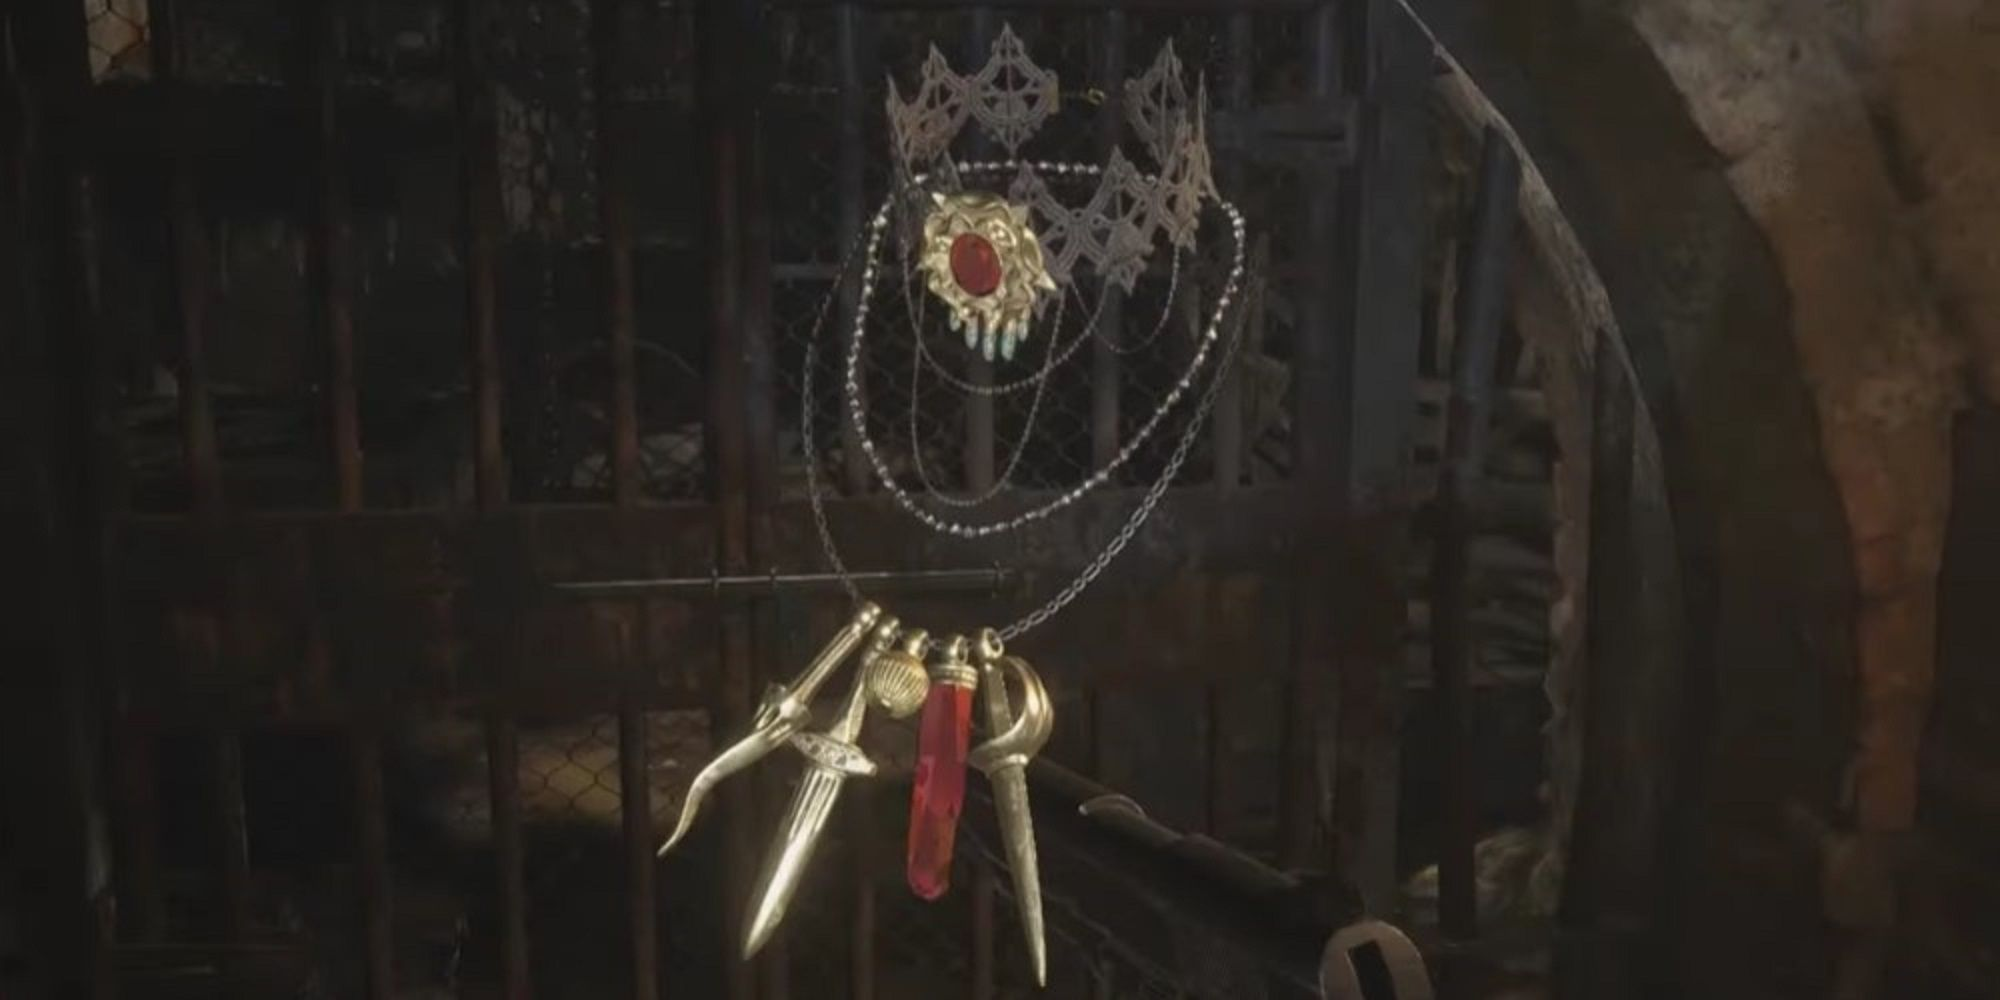 Resident Evil 8 Village Complete The Necklace With Two Holes – Lady Dimitrescu's Necklace